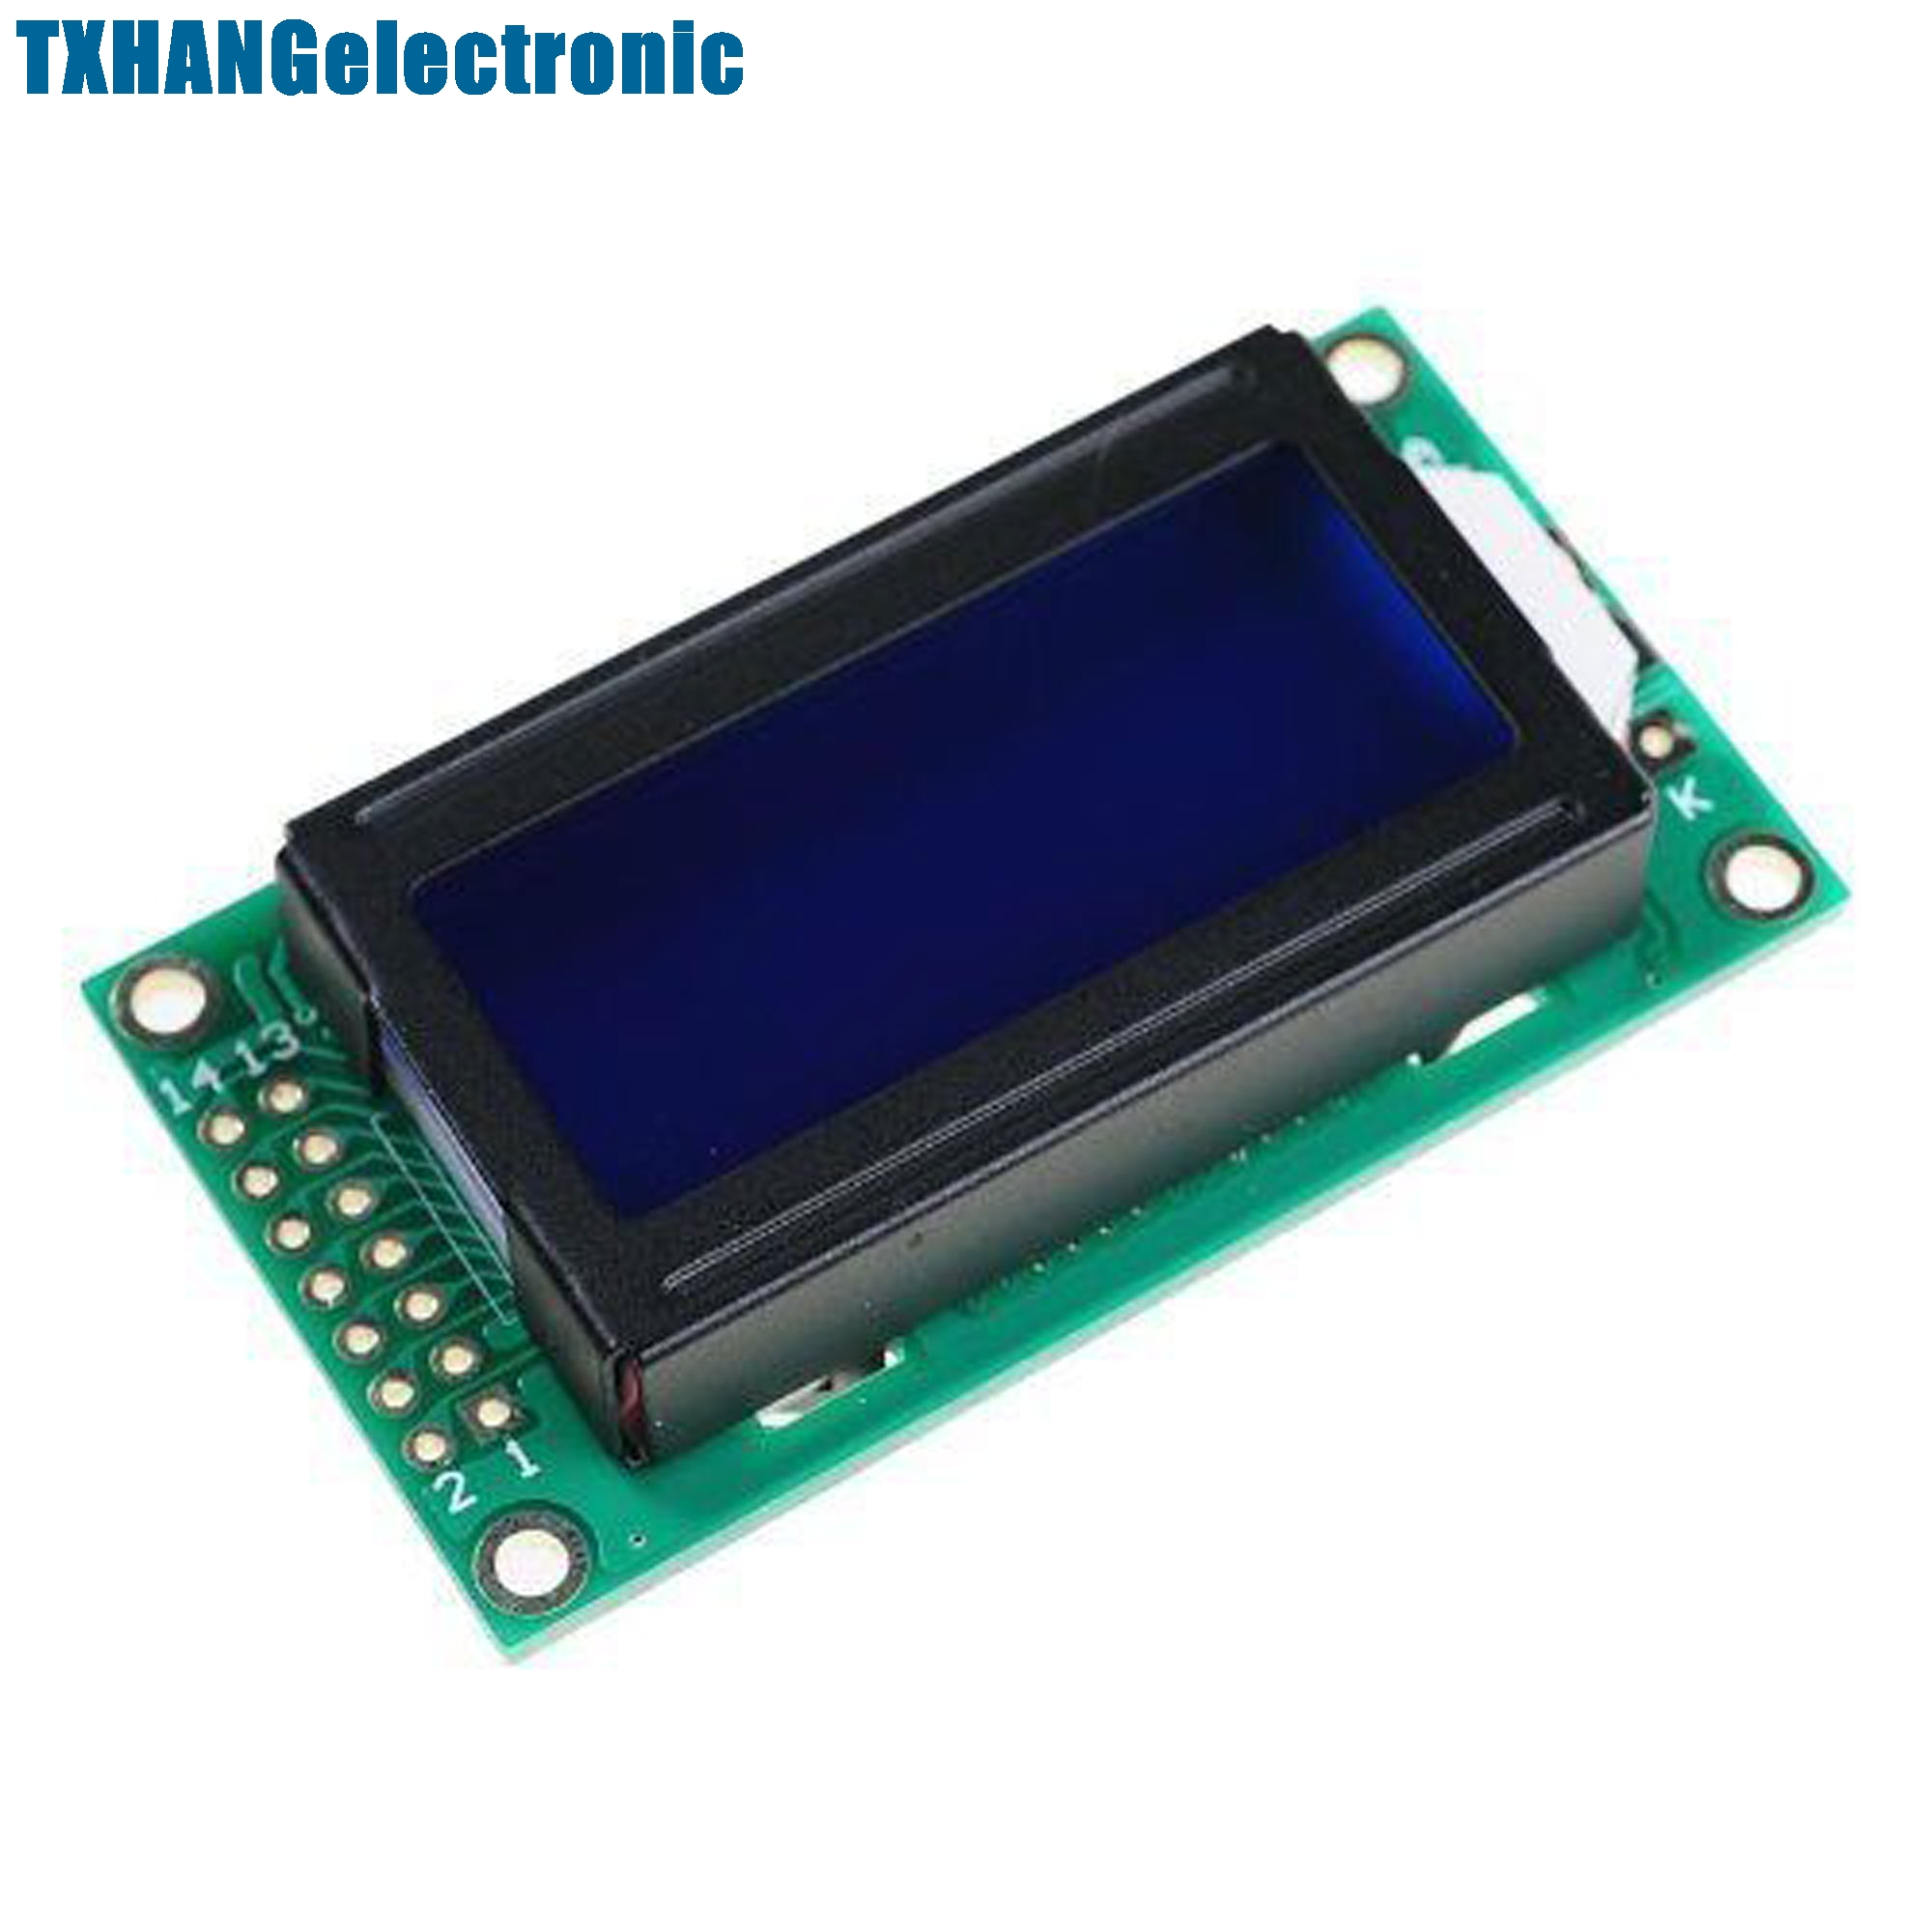 1pcs 0802 8X2 Characters LCD Module Blue Backlight Diy Electronics